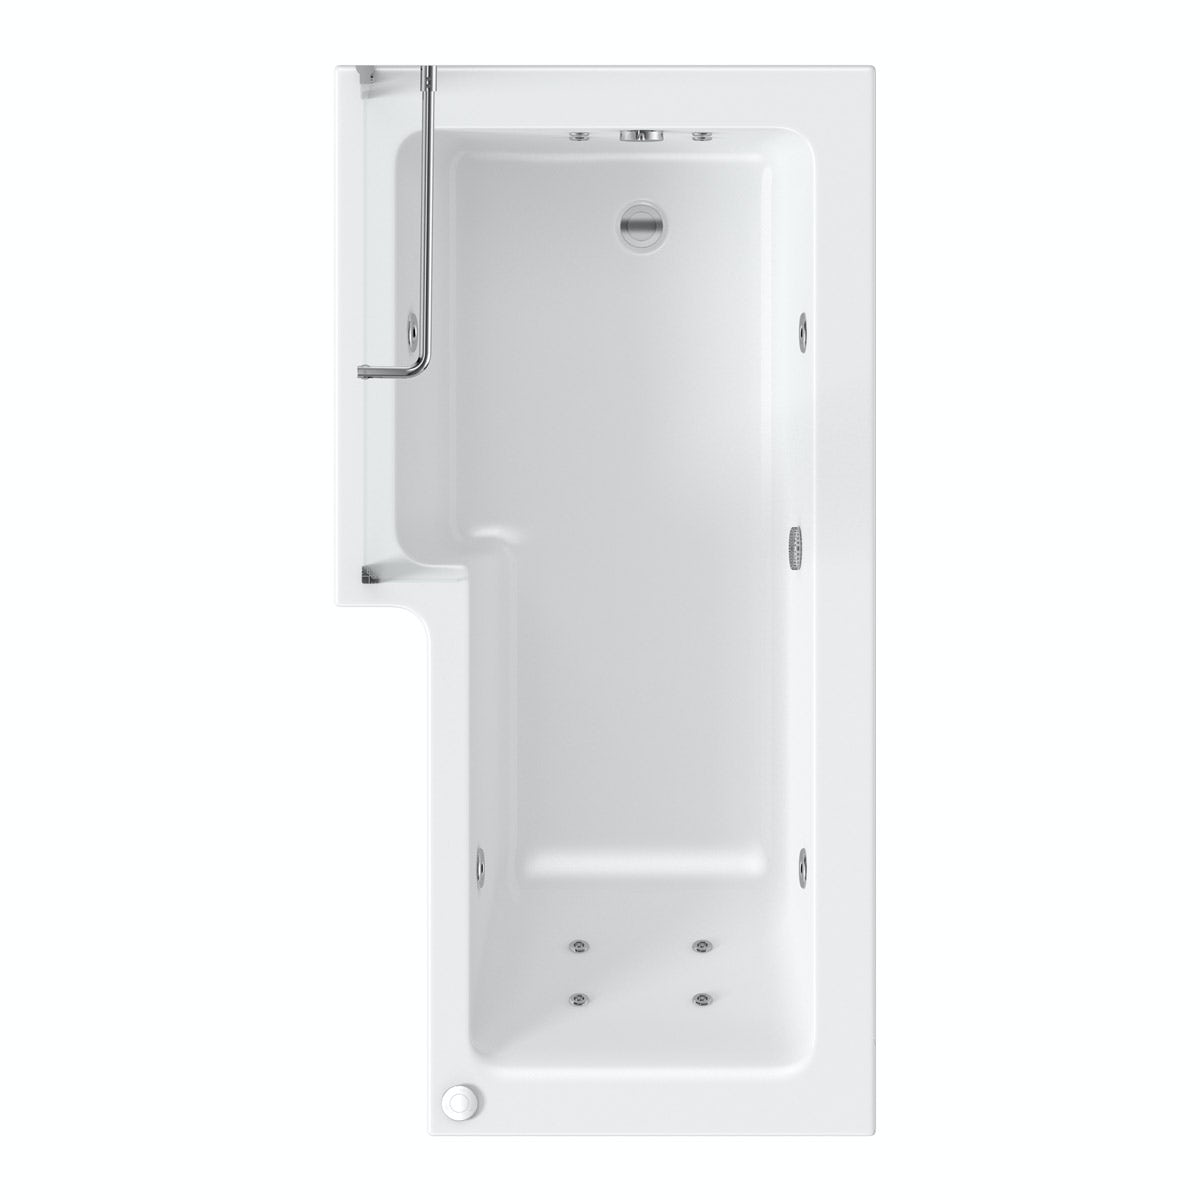 L Shaped Left Handed 12 Jet Whirlpool Shower Bath With